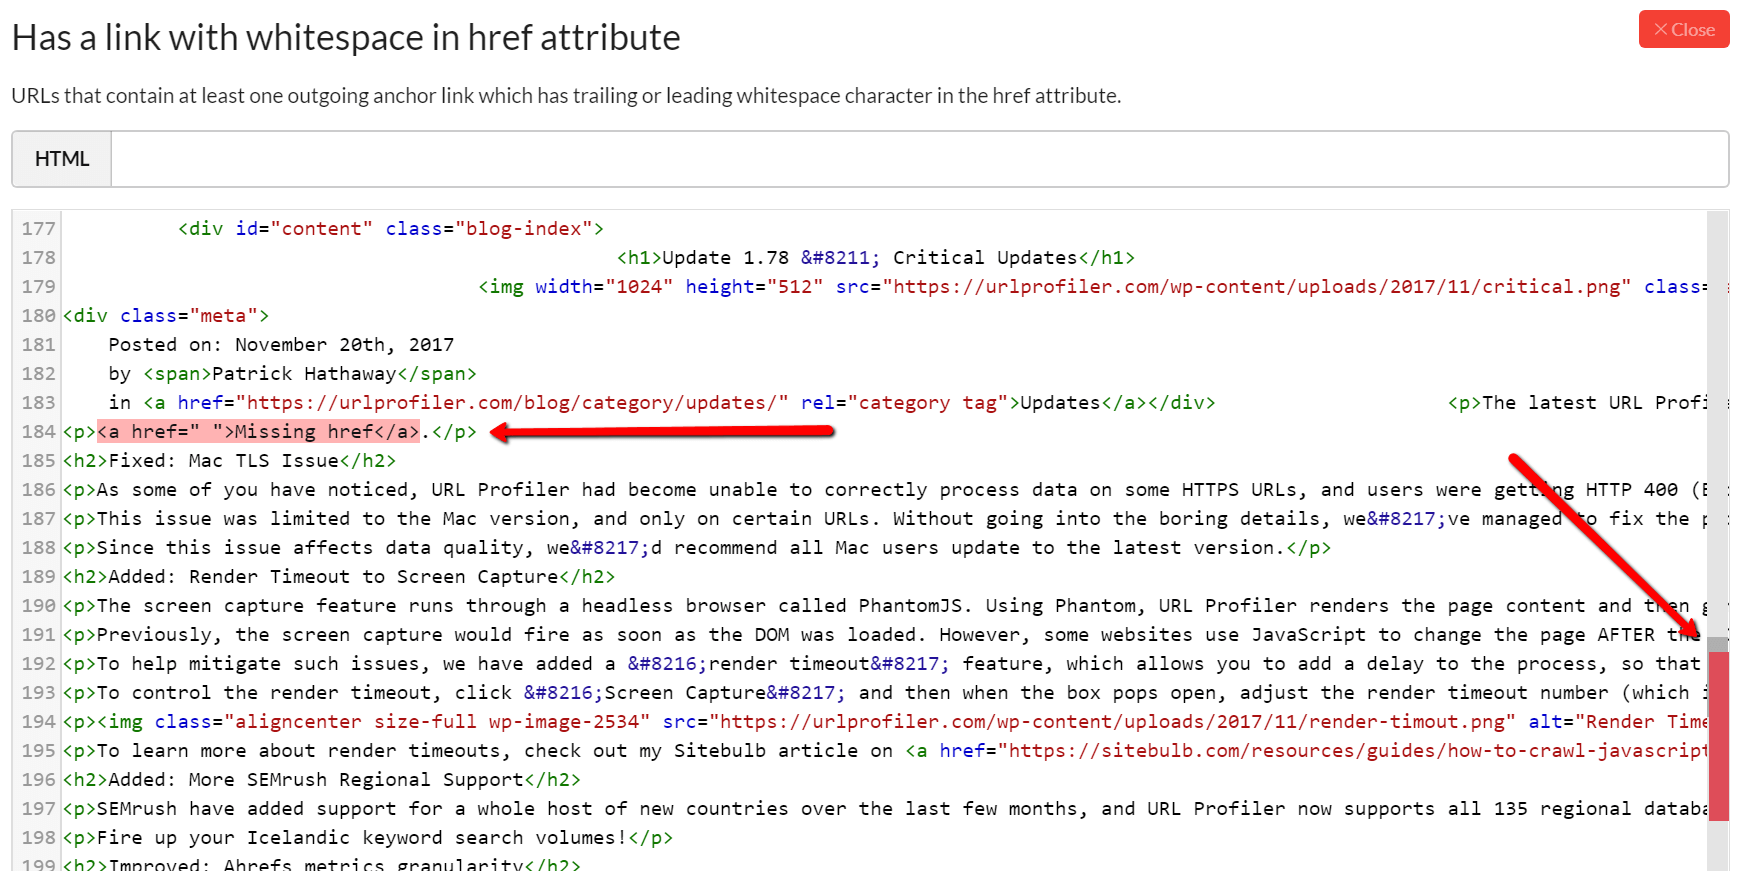 Links with whitepace in the href - highlighted in HTML